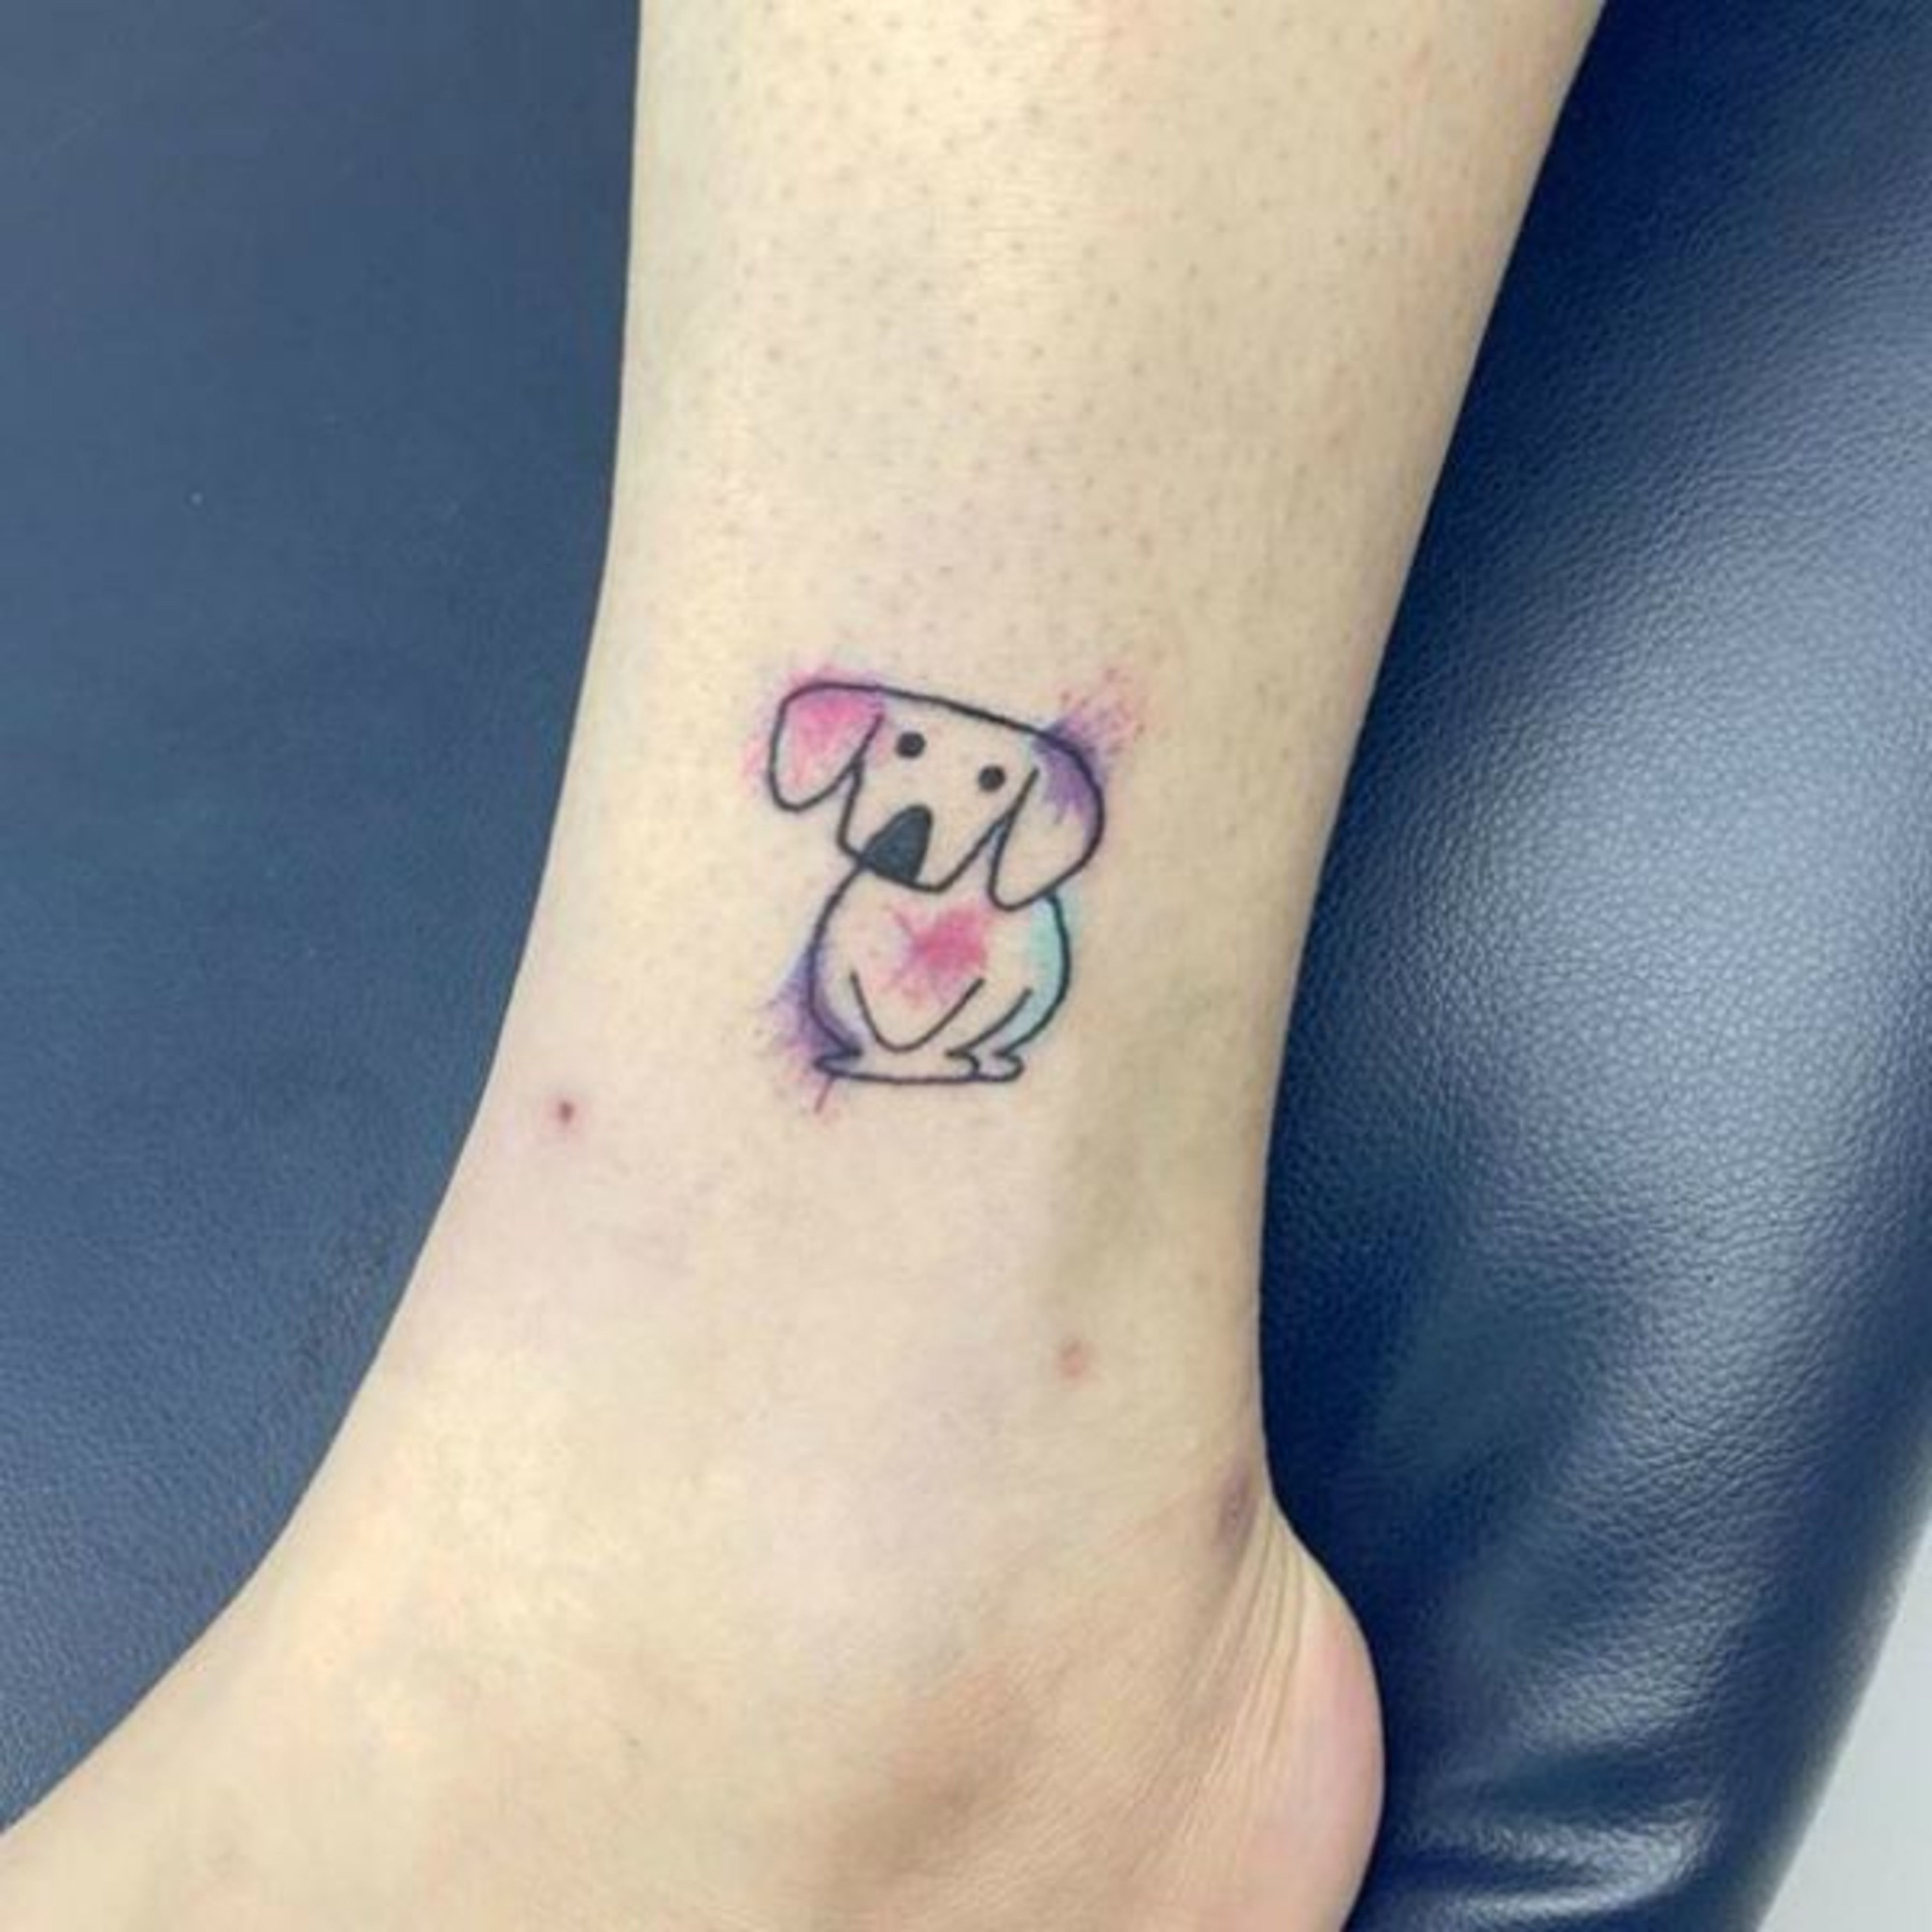 41 dog tattoos to celebrate your four-legged best friend: little